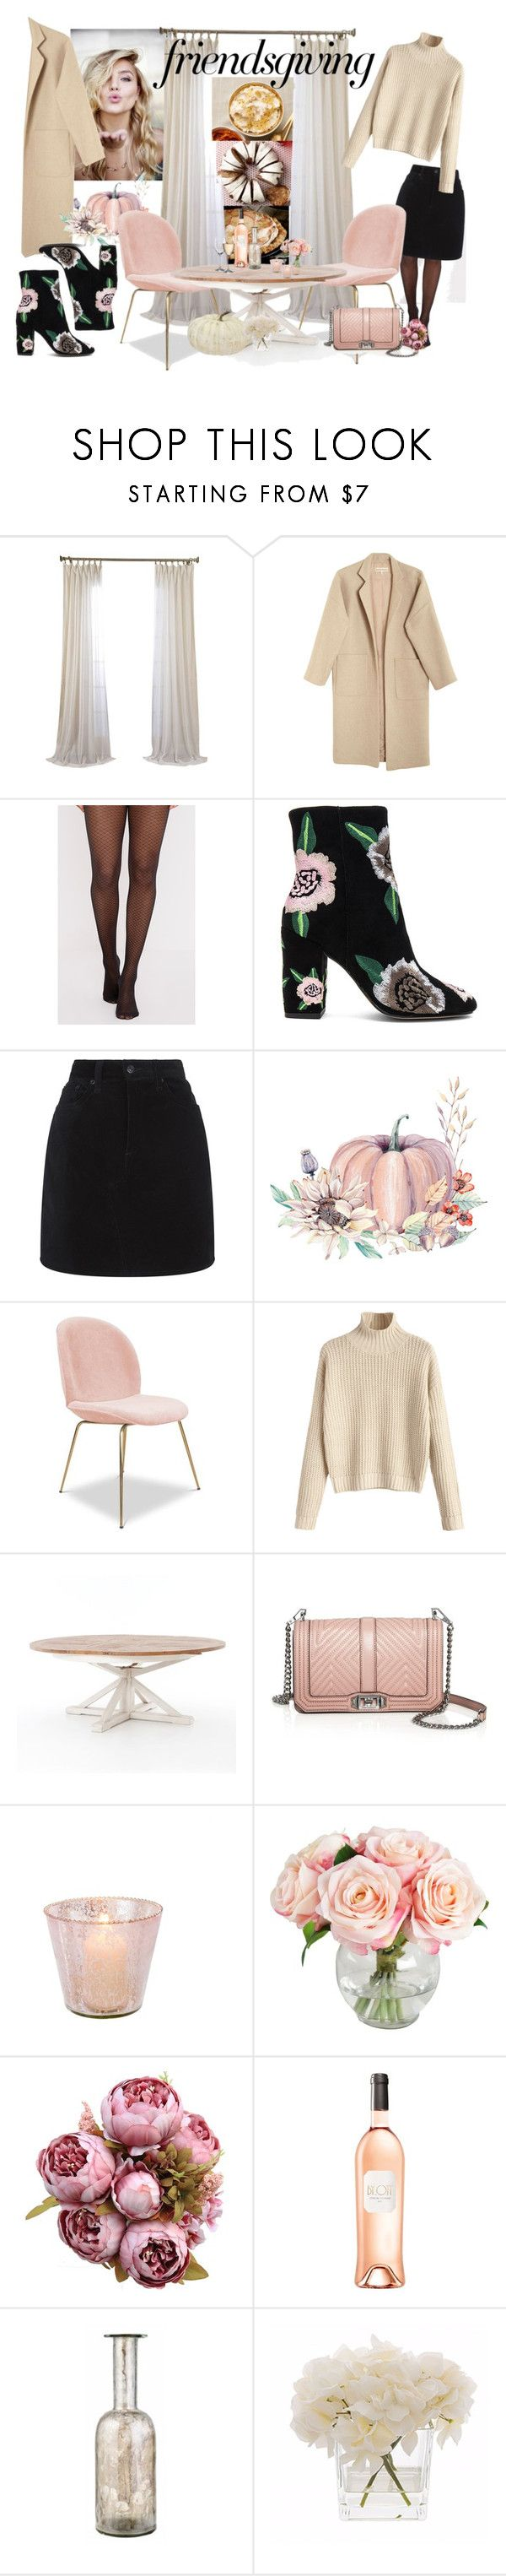 """""""Untitled #96"""" by joshdreamer ❤ liked on Polyvore featuring Mara Hoffman, Rebecca Minkoff, rag & bone, Pottery Barn, Kelly Hoppen and Home Essentials"""